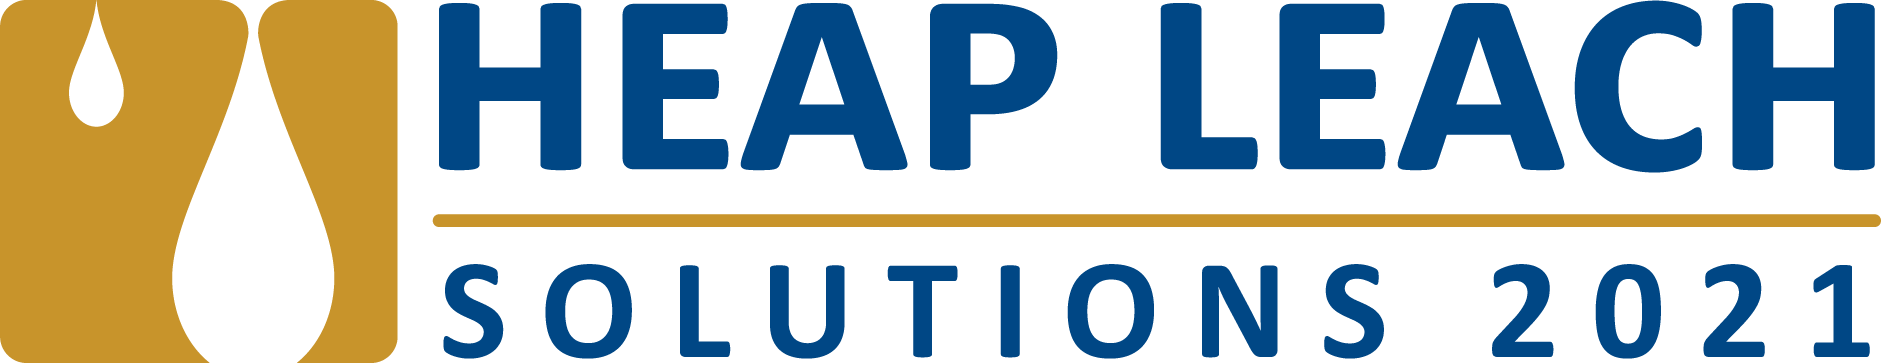 Heap Leach Solutions 2021